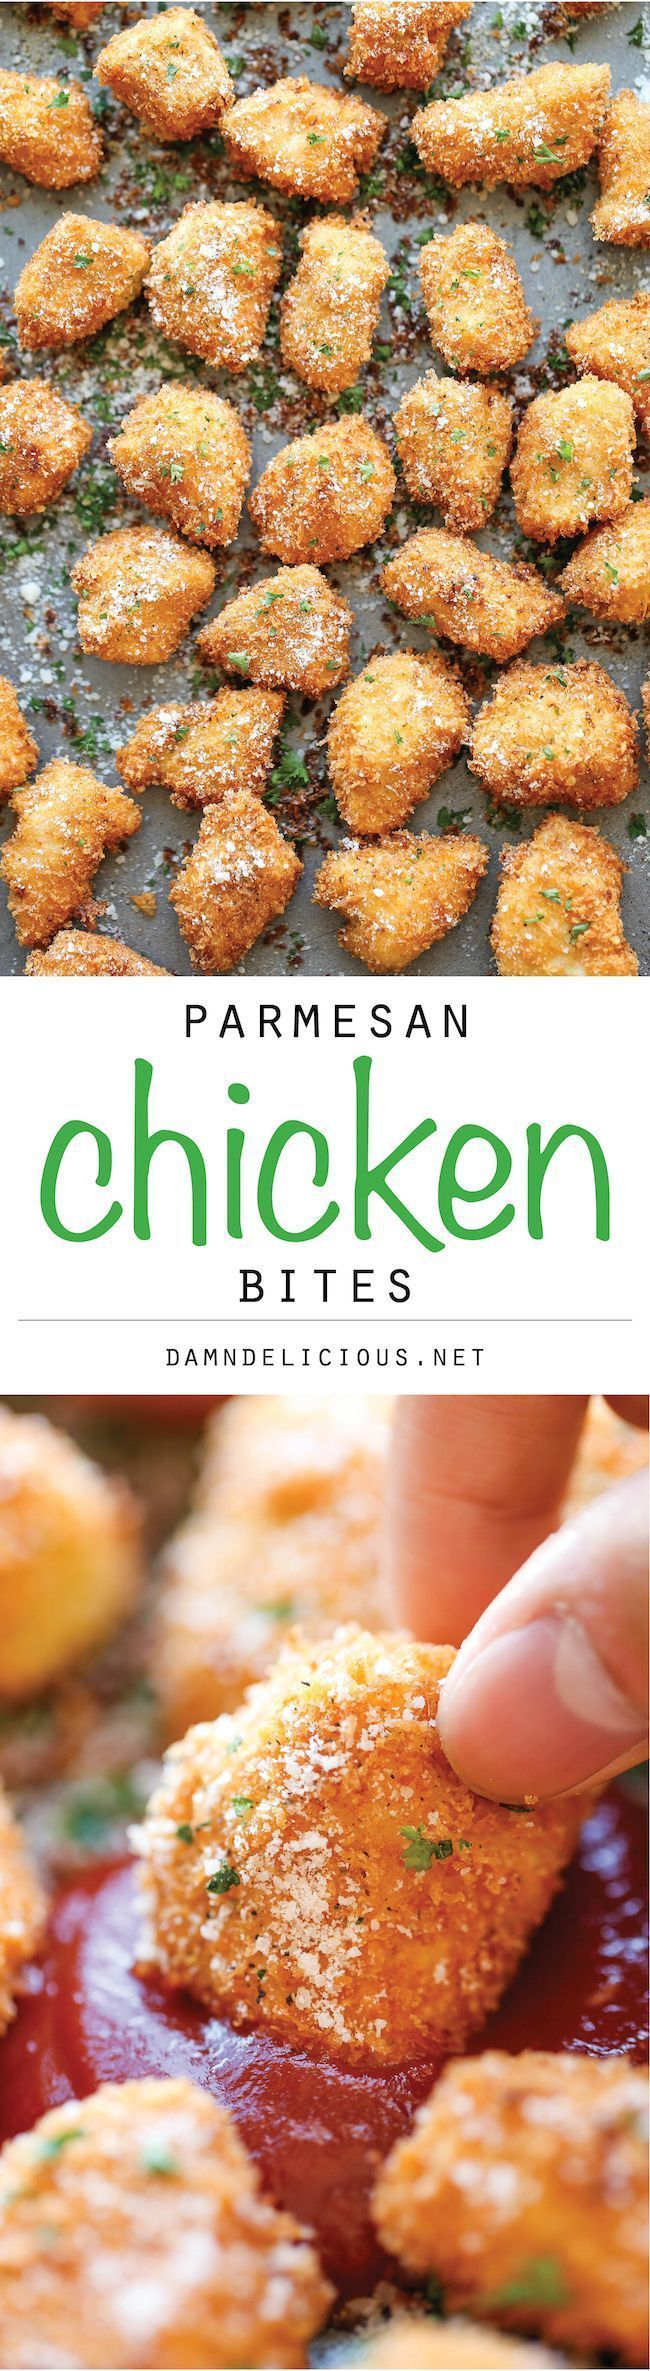 946 best appetizers images on pinterest appetizer recipes relish parmesan chicken bites best party foodparty food recipesmeat forumfinder Image collections